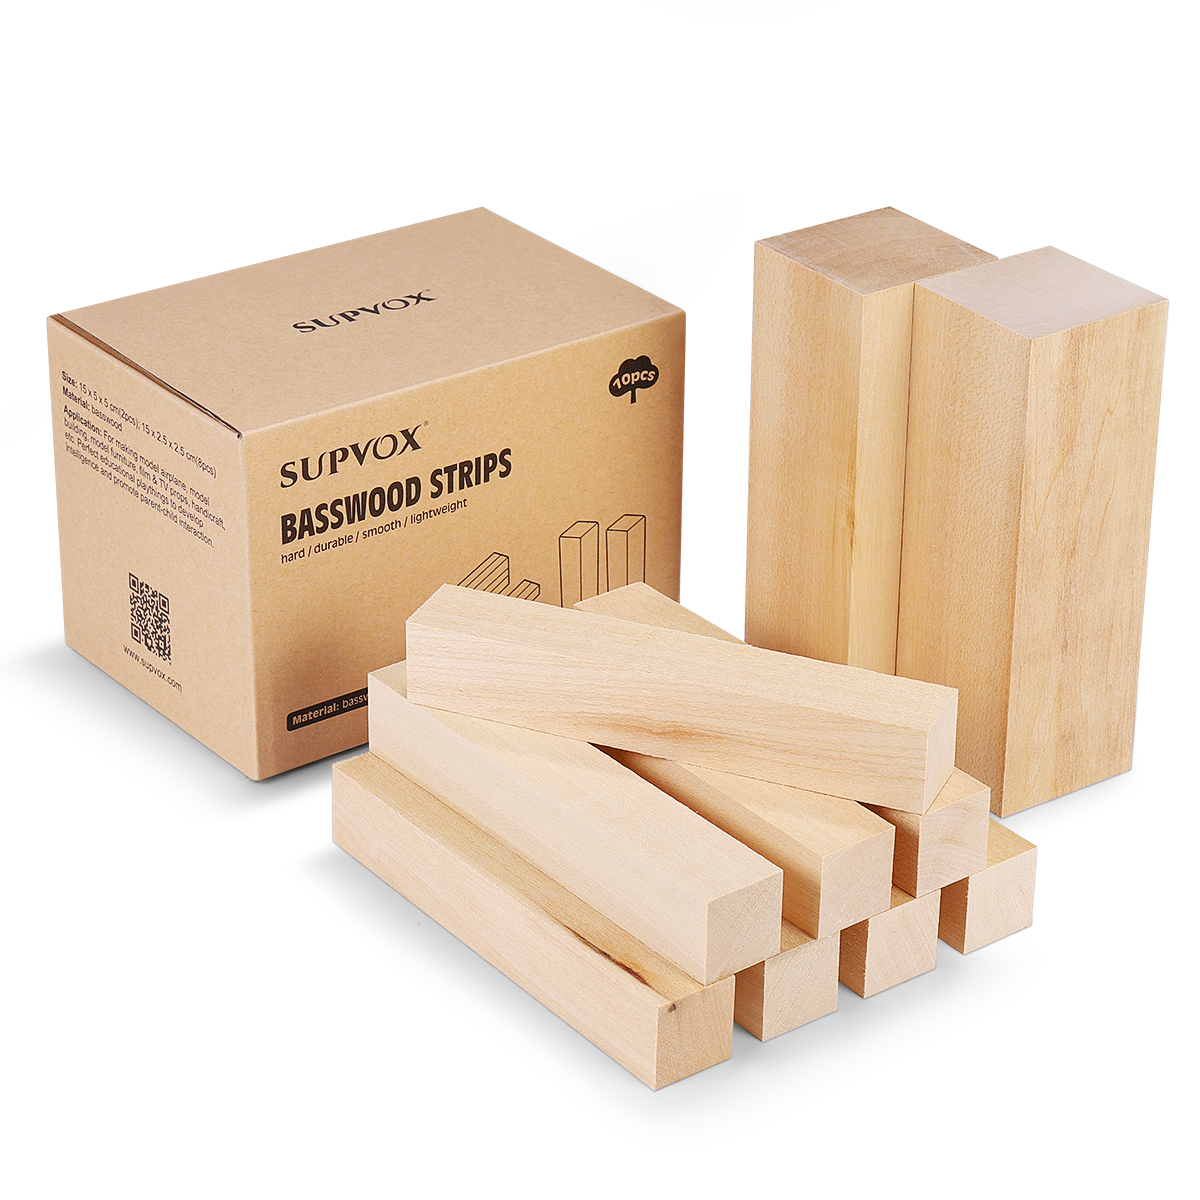 SUPVOX 10PCS Basswood Strips Hard Smooth Model Toys Building Carving Handicraft DIY Accessories Educational Playthings